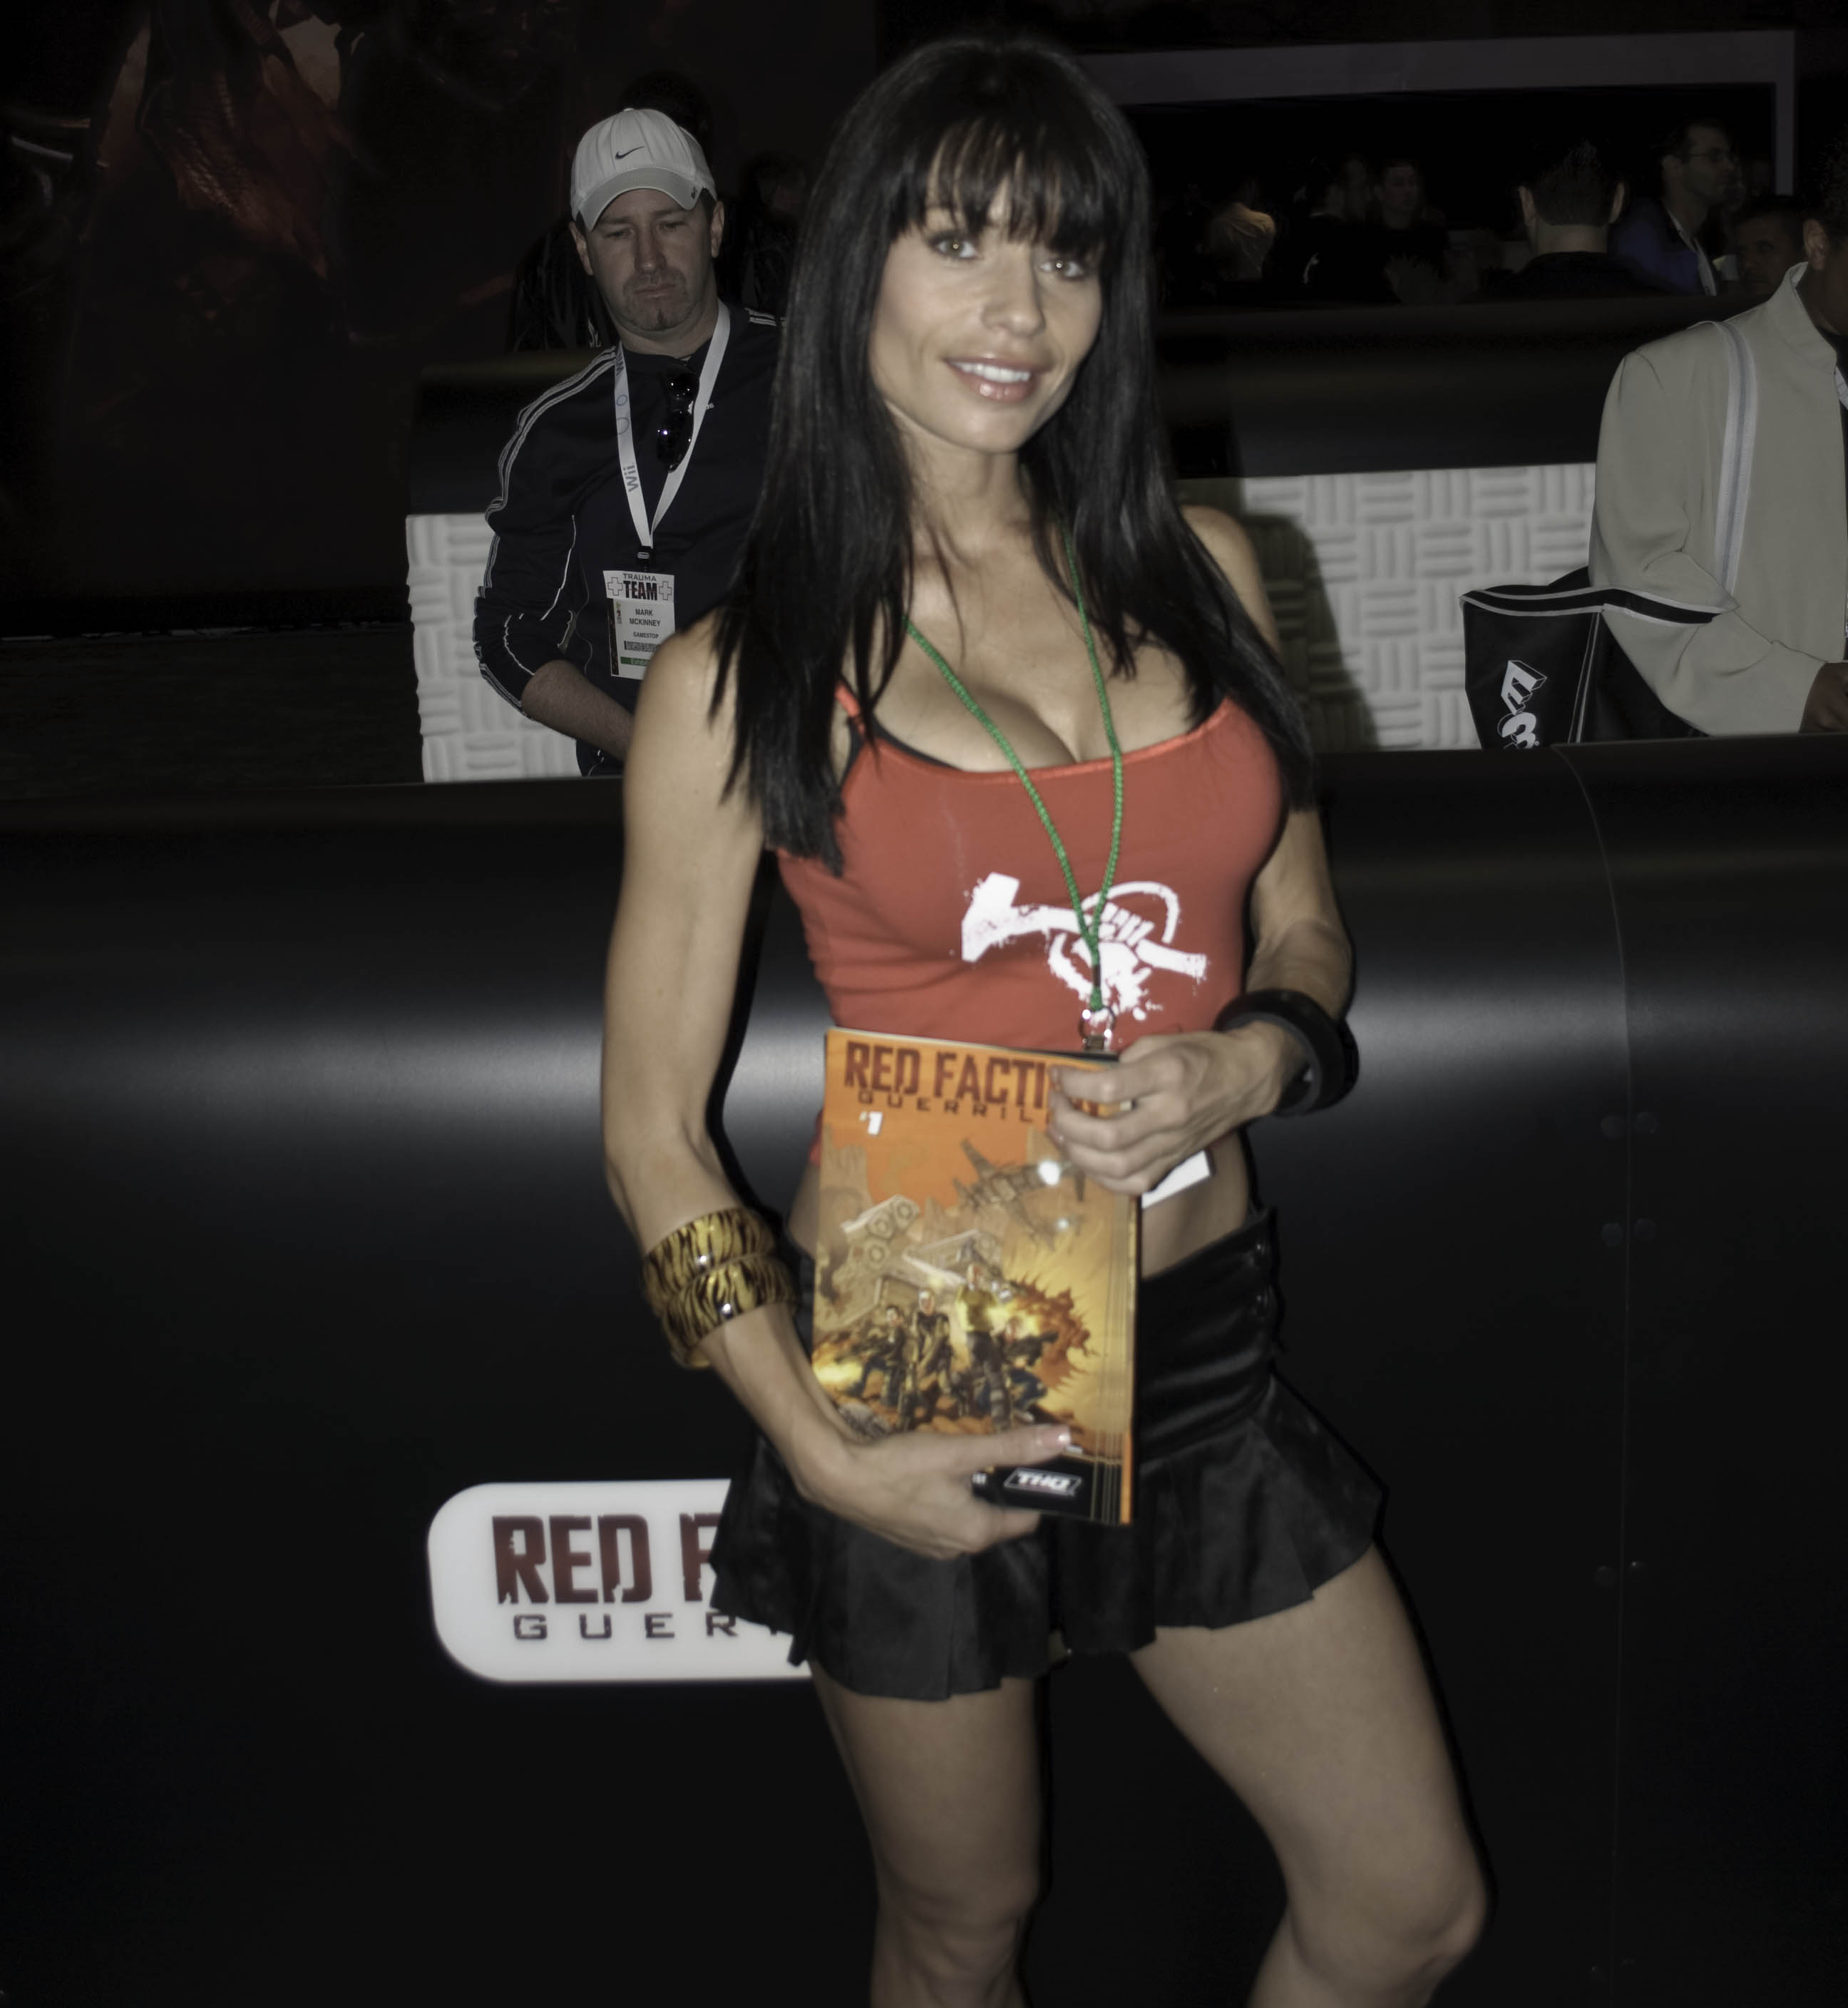 e3 2009 booth babe red faction